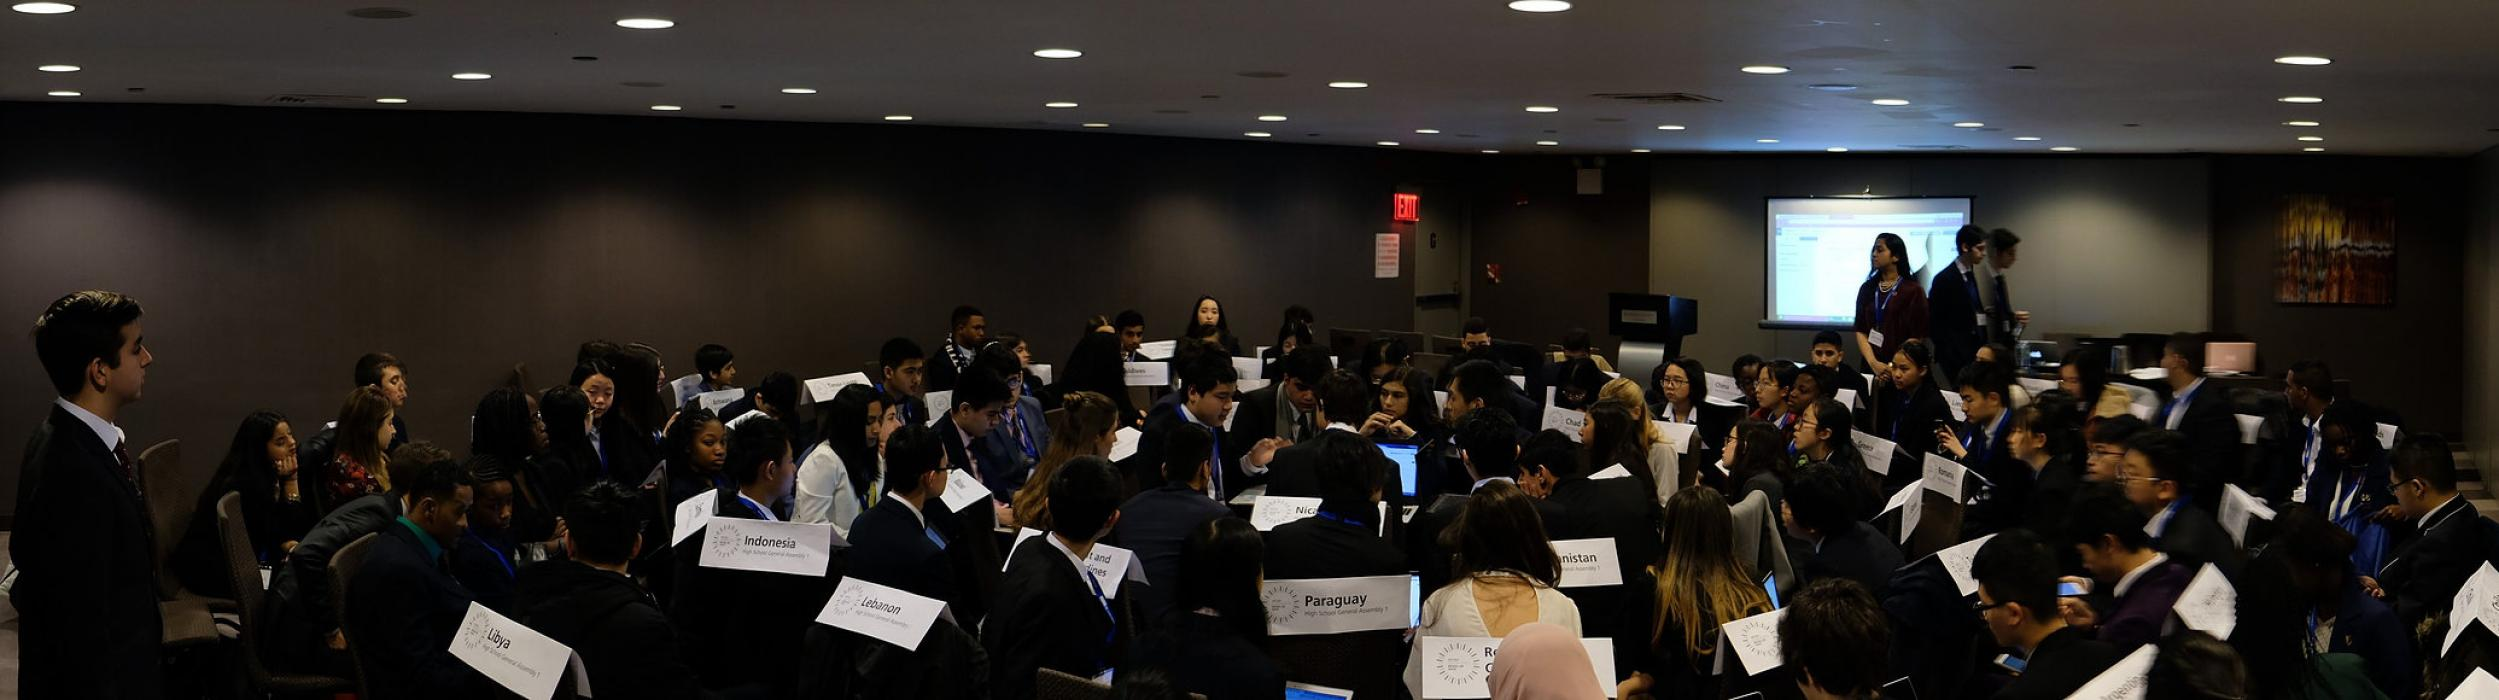 WIMUN: The REAL UN Experience